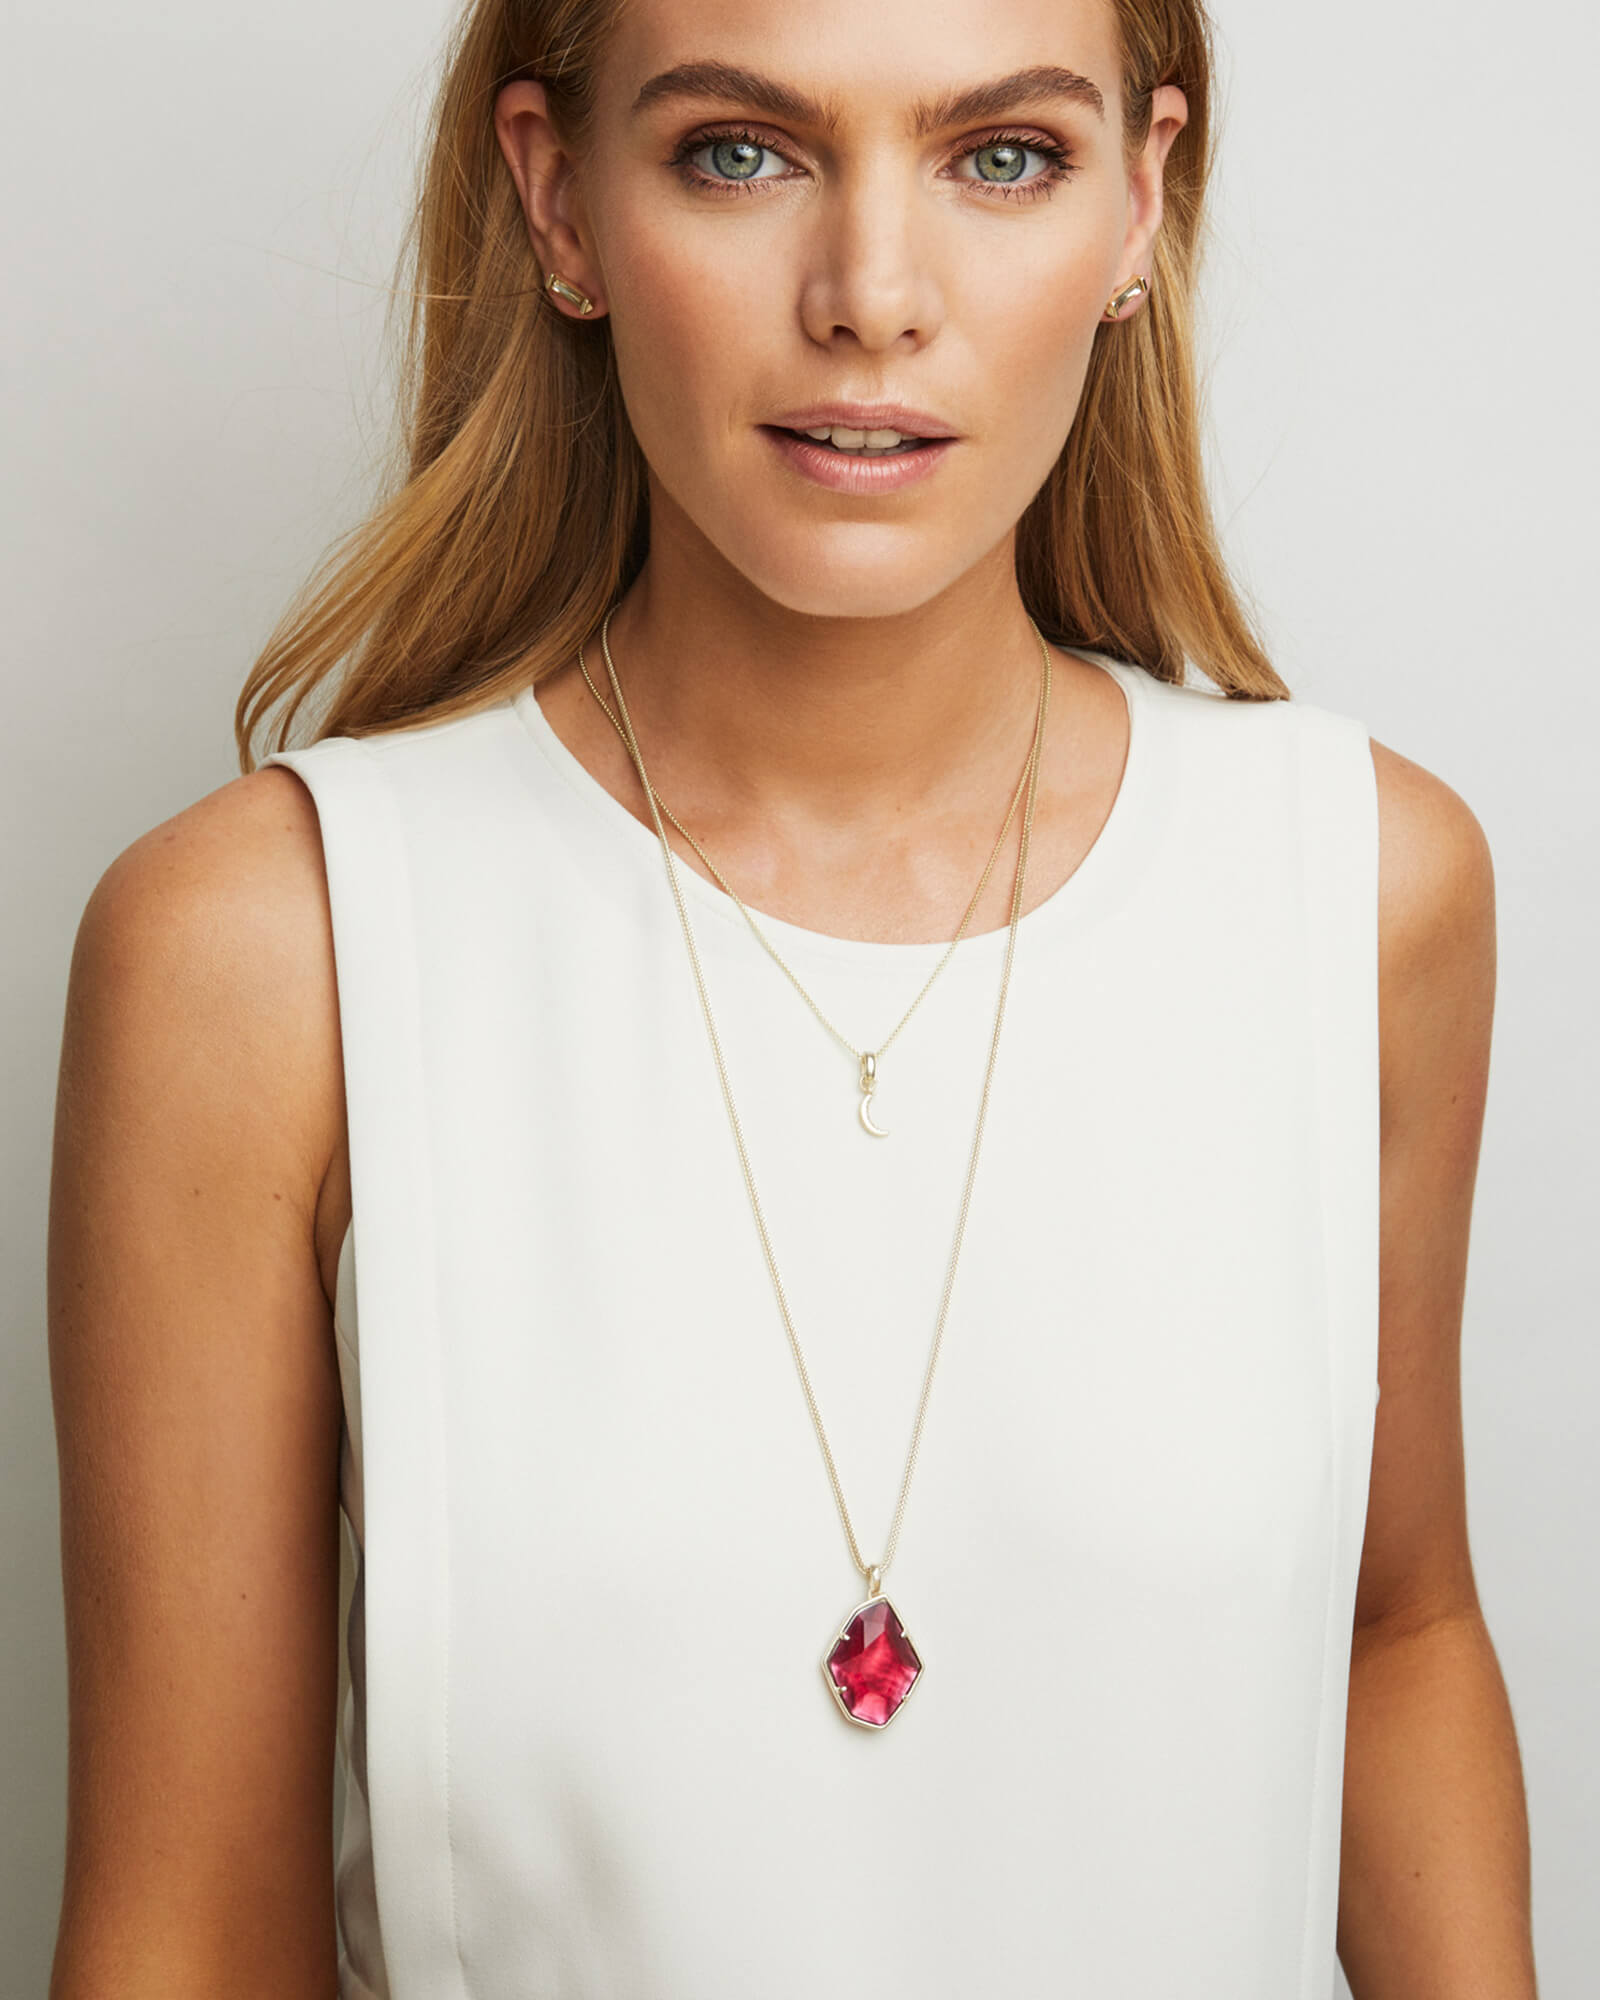 Kalani Rose Gold Pendant Necklace in Sable Mica